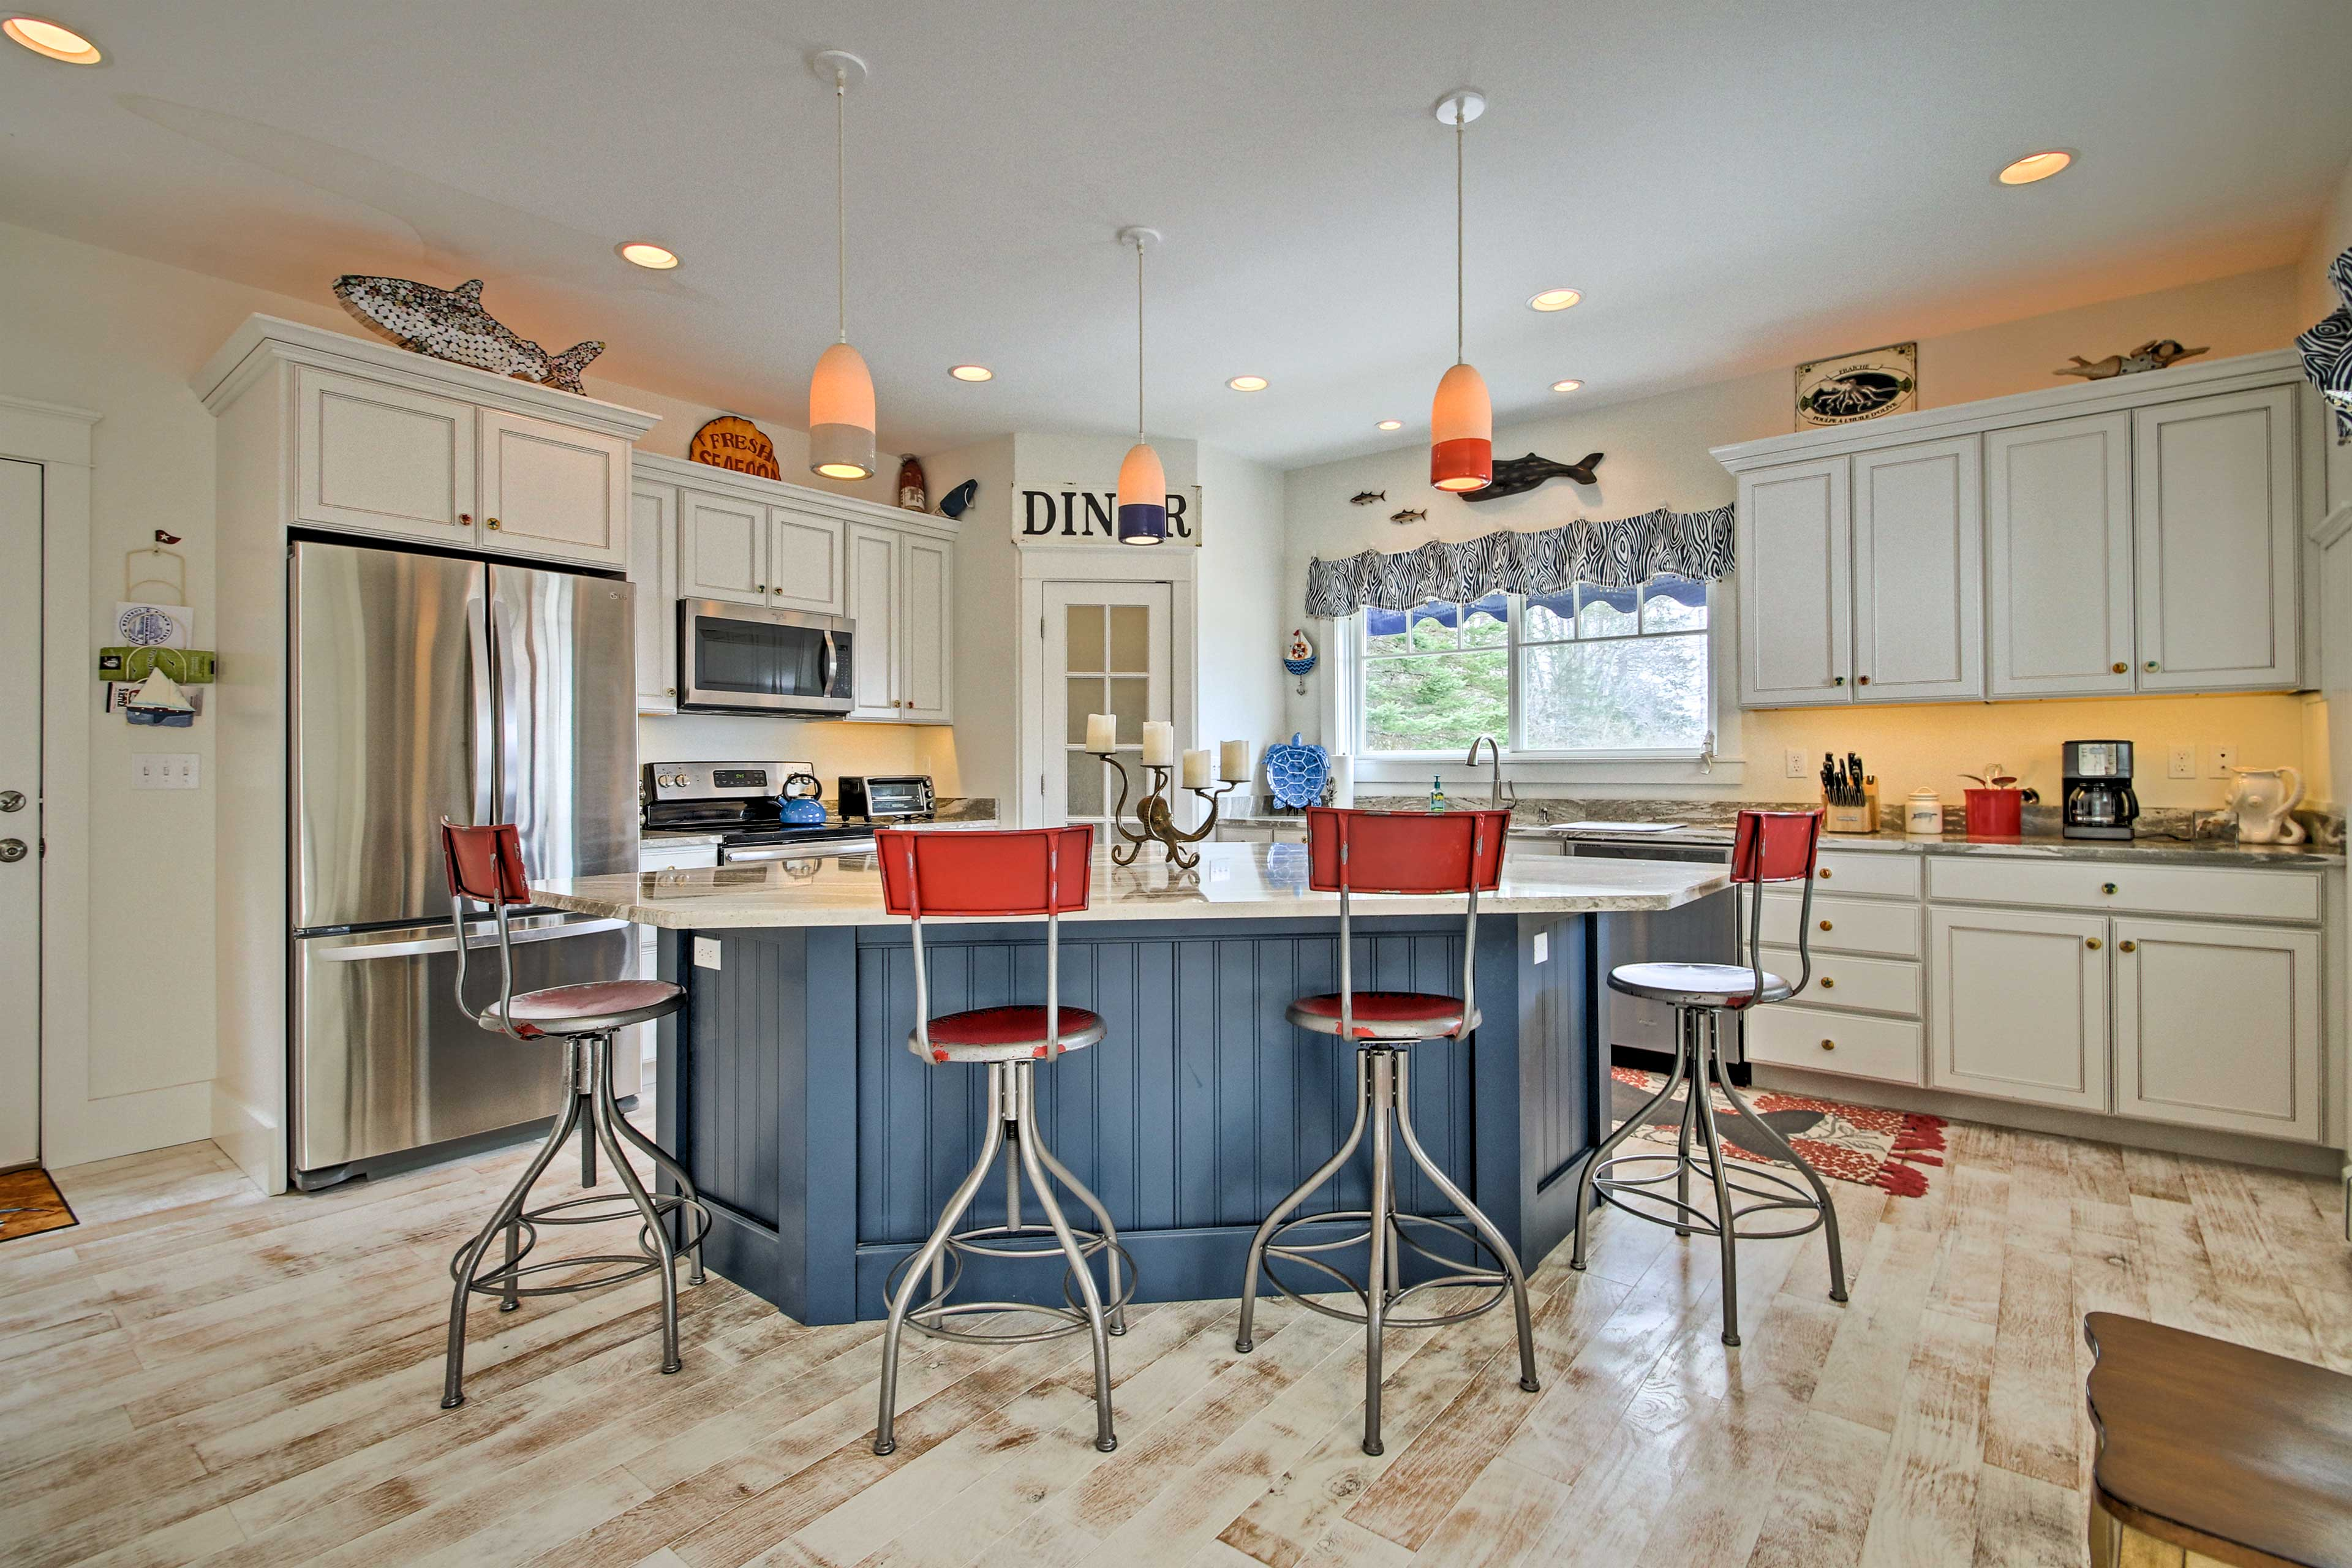 Prepare meals while guests watch at the breakfast bar.